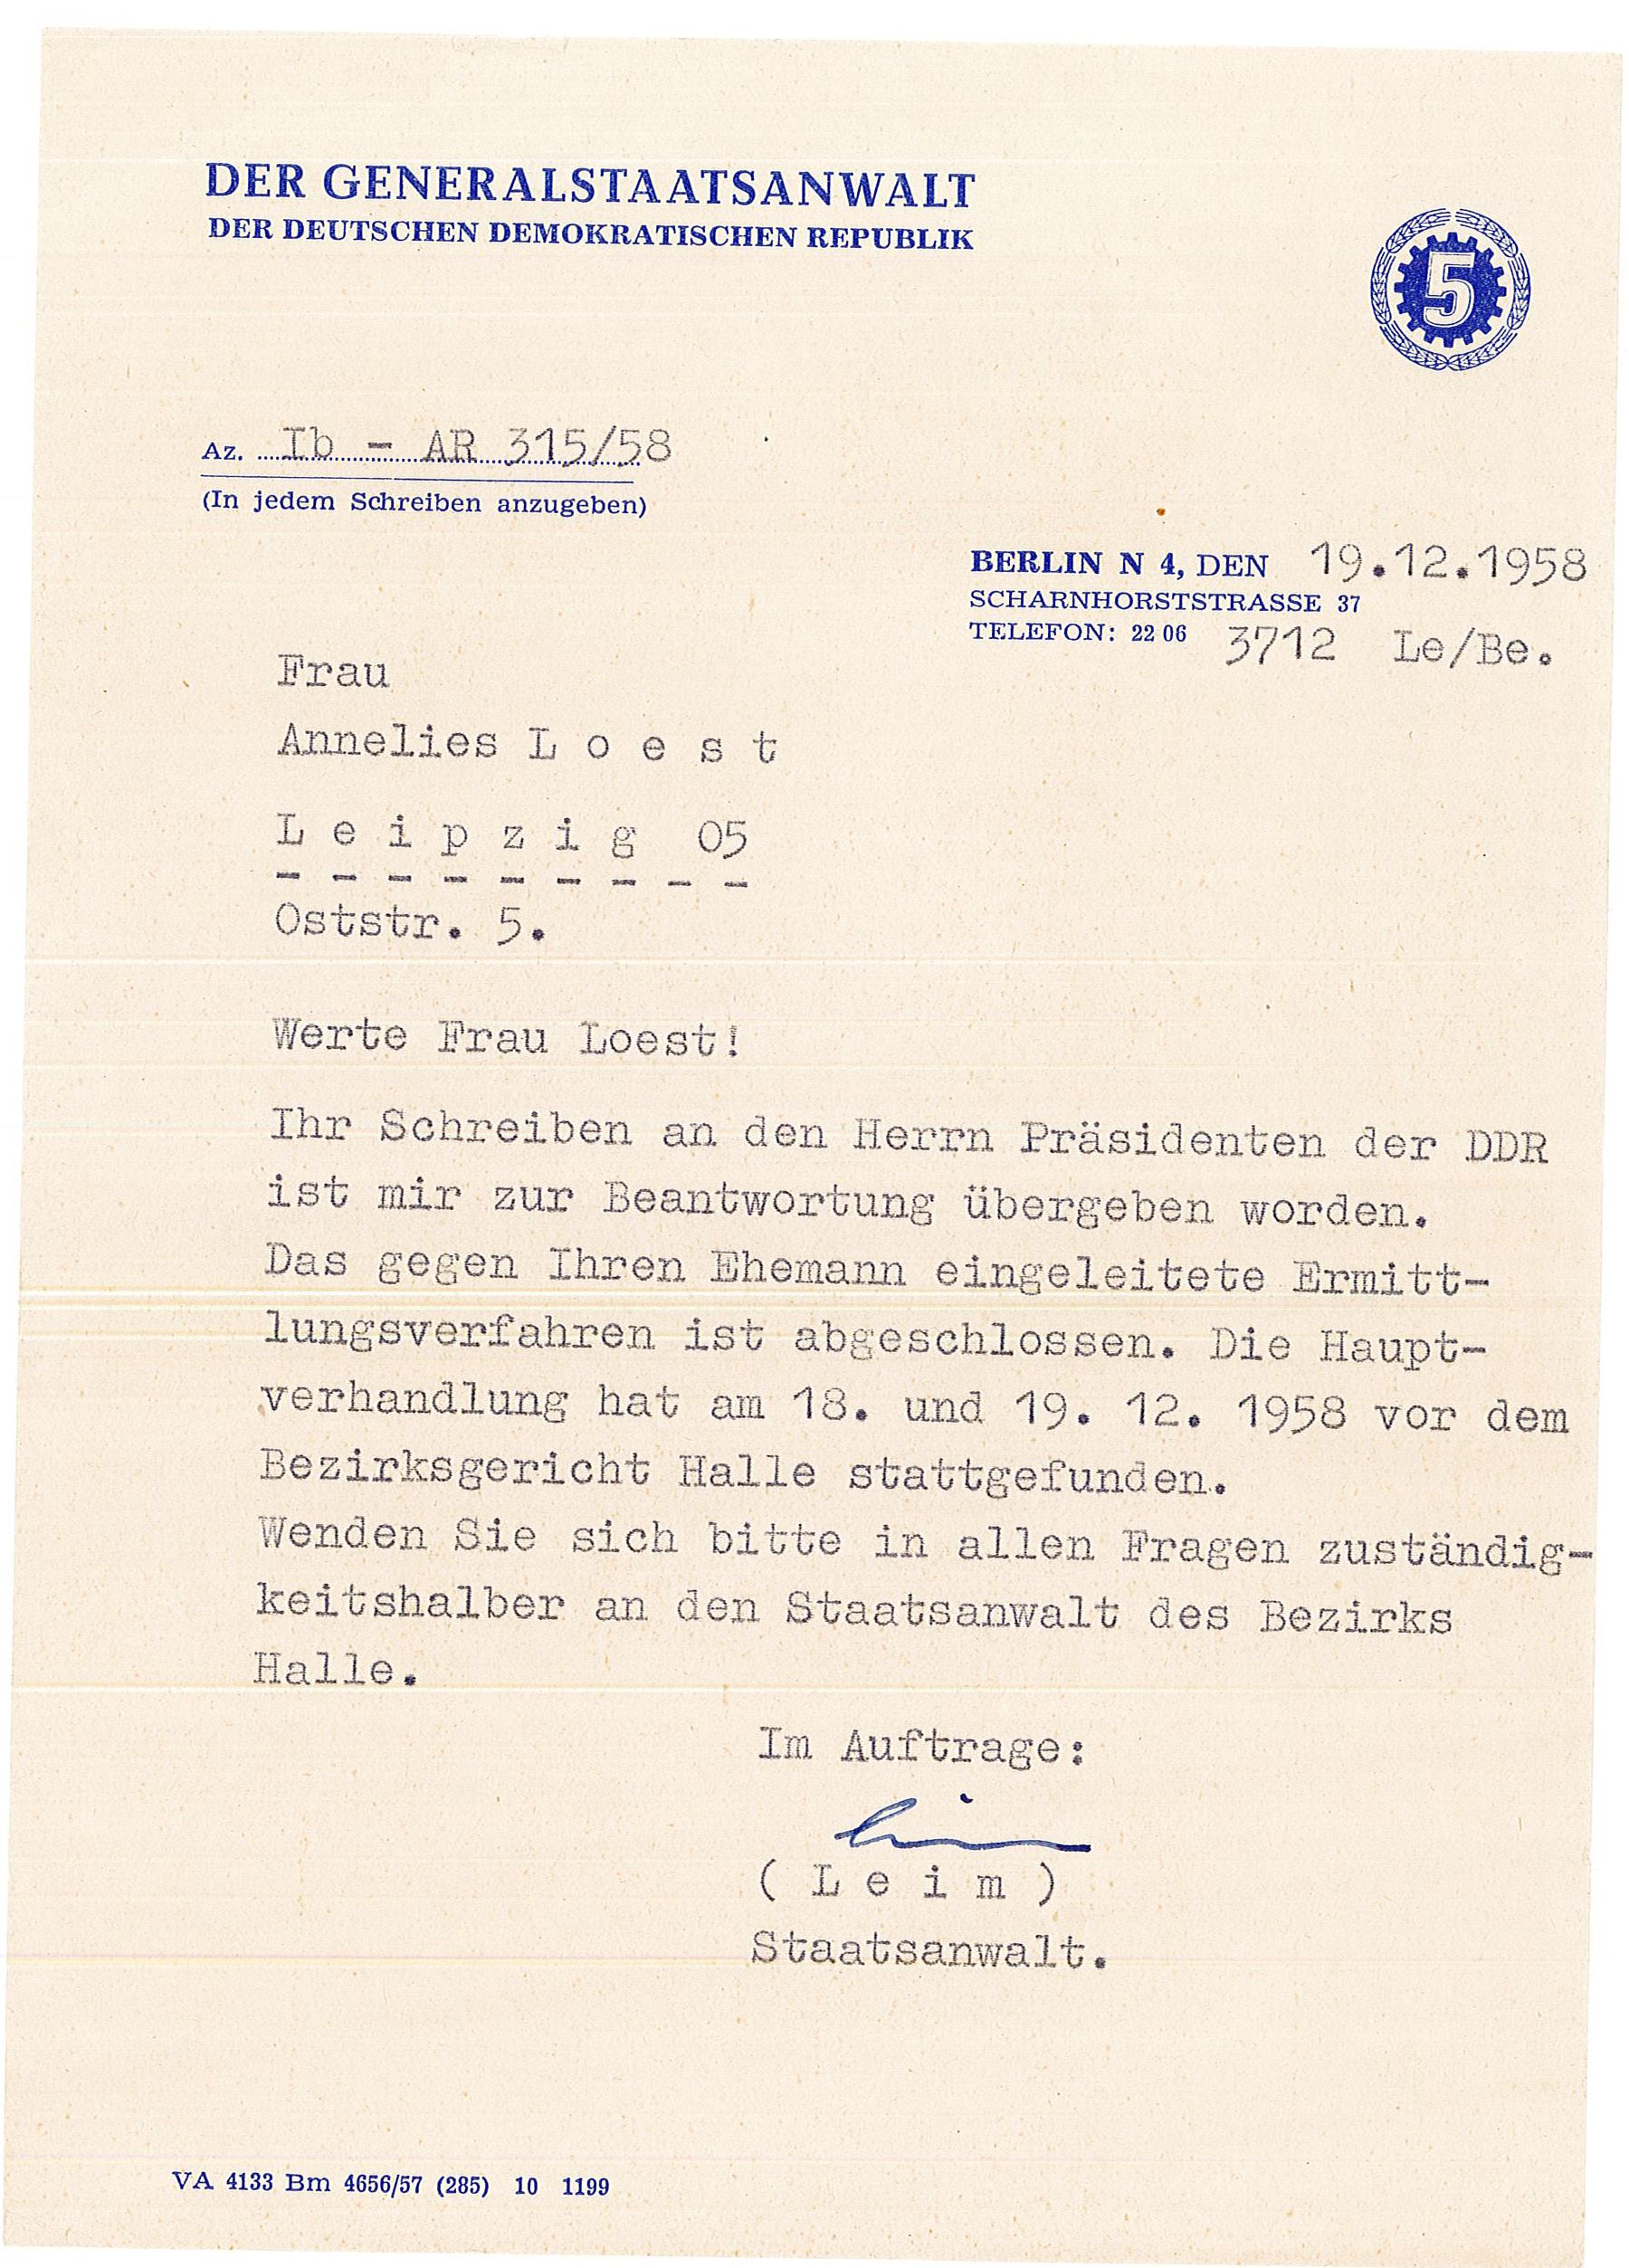 Brief des Generalstaatsanwalts an Annelies Loest (1958)